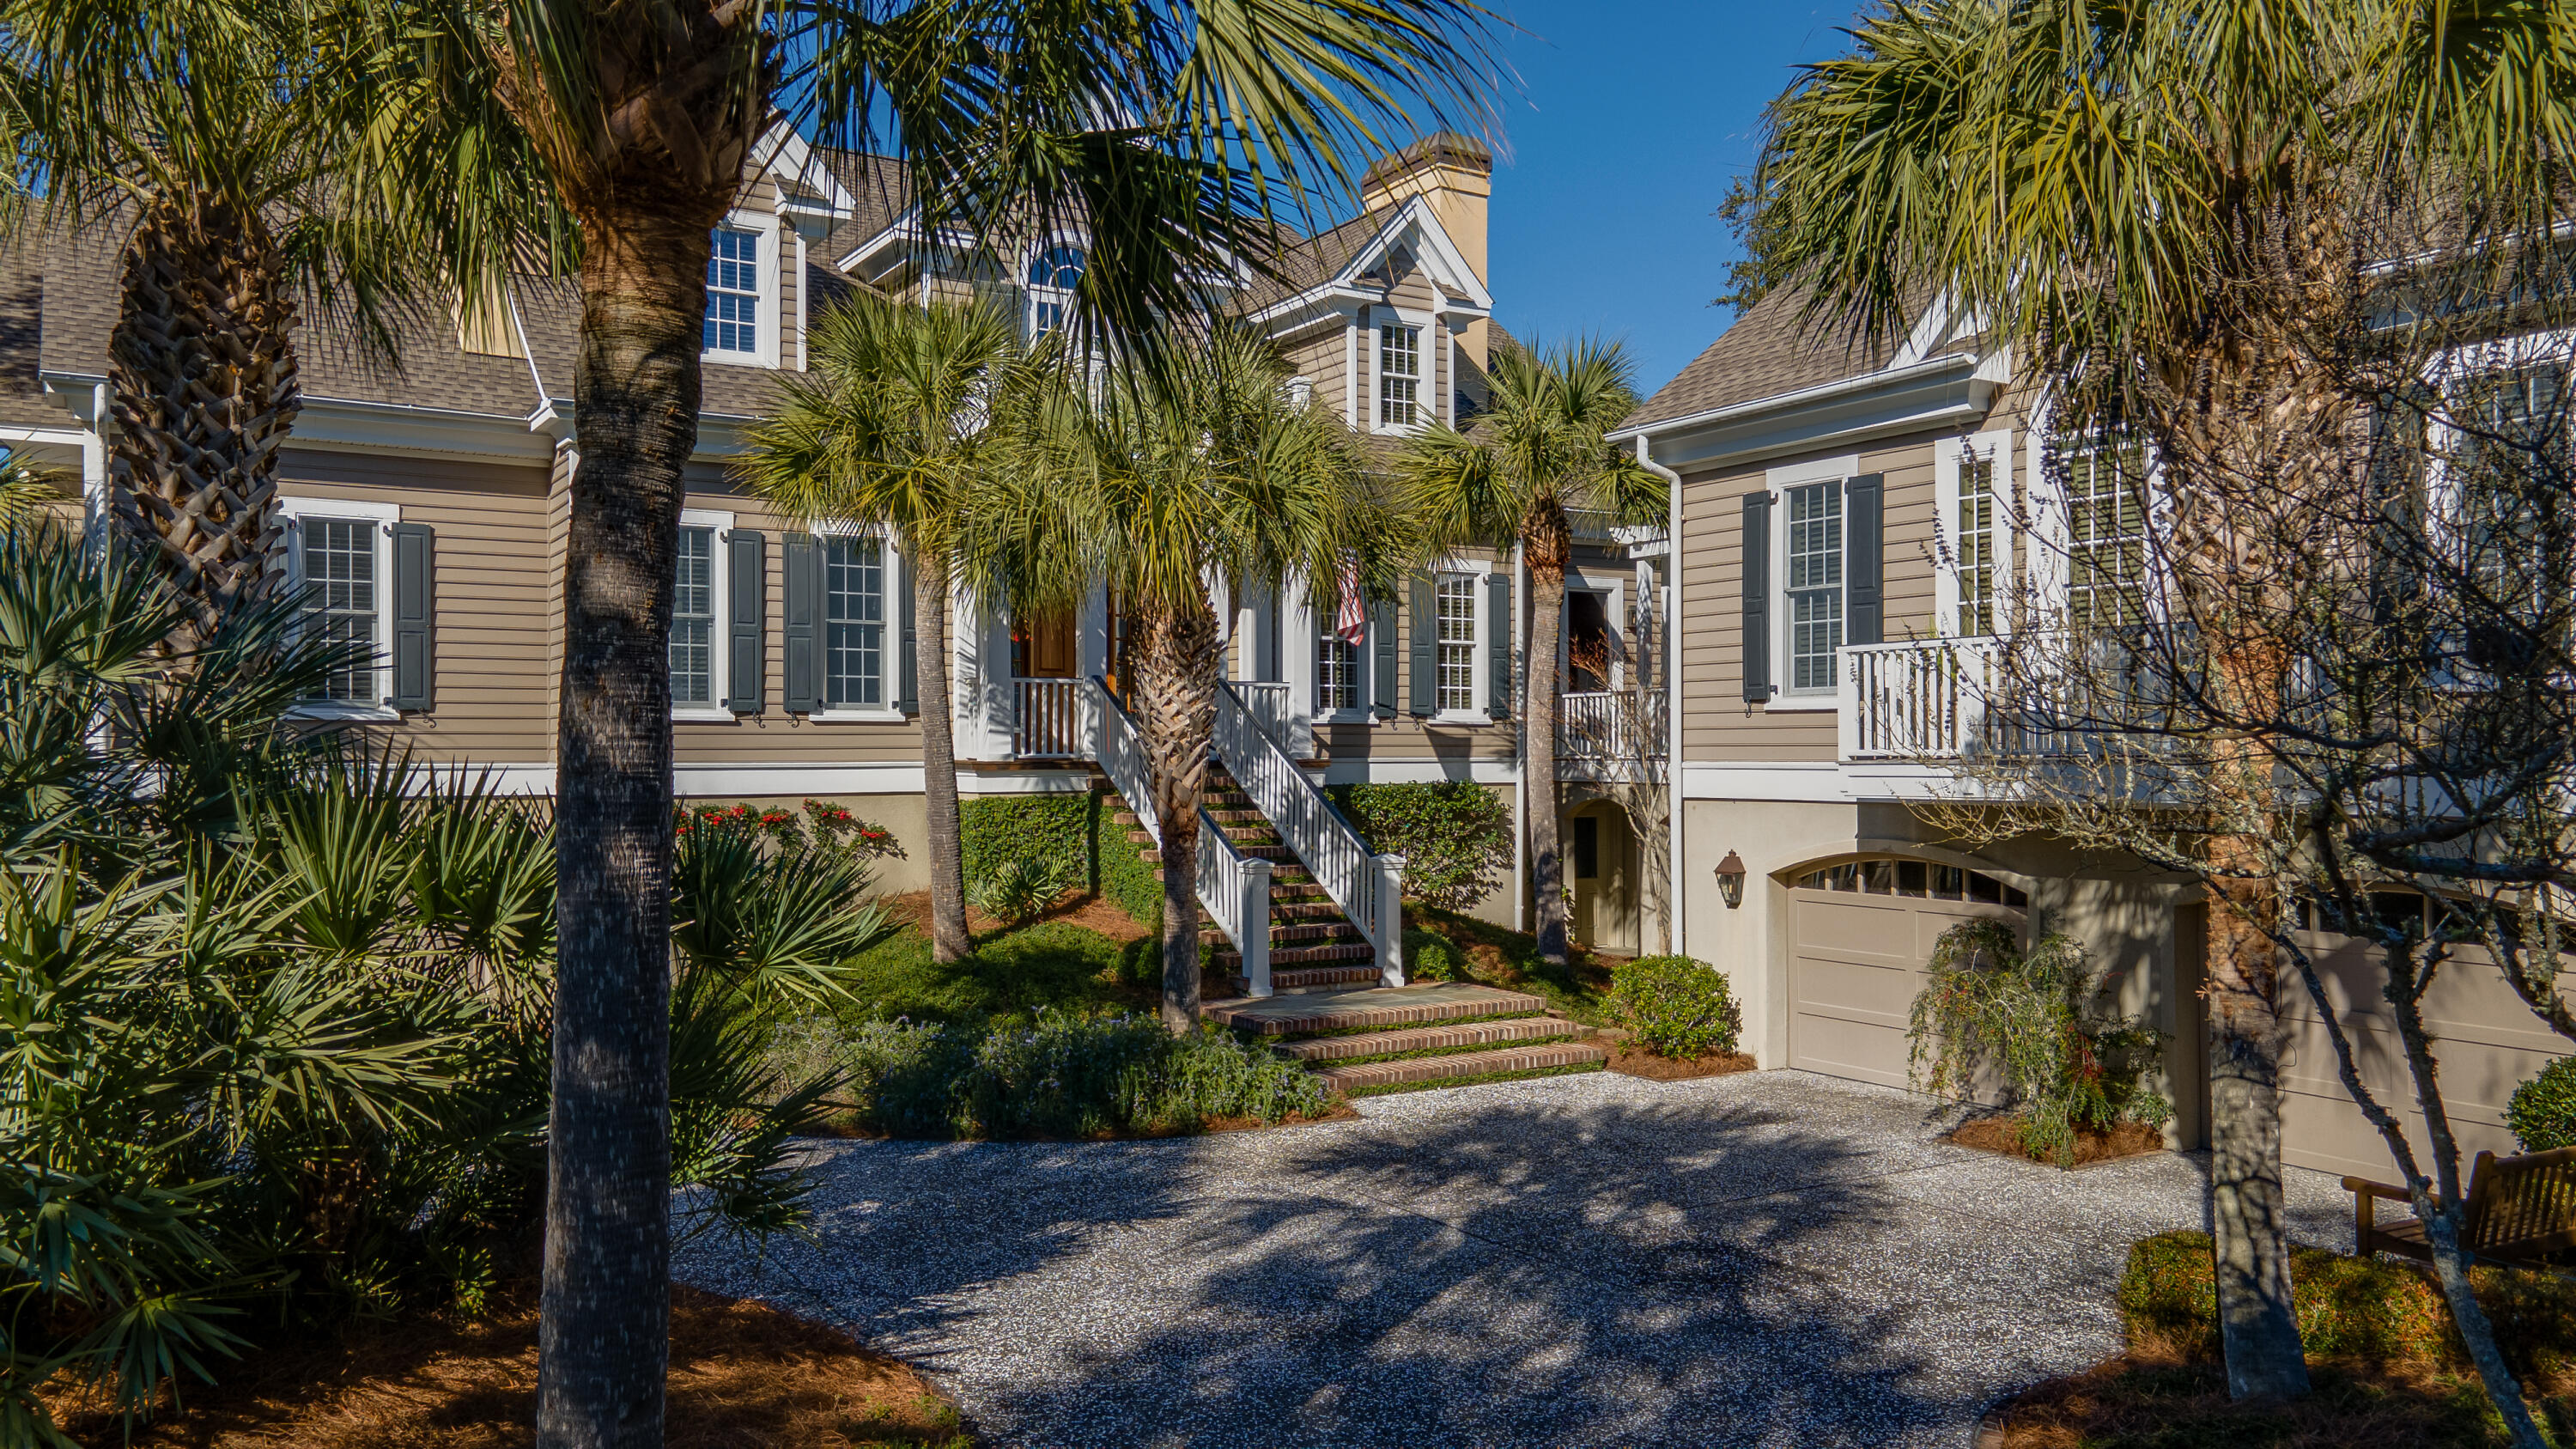 Wild Dunes Homes For Sale - 20 Fairway Village, Isle of Palms, SC - 16